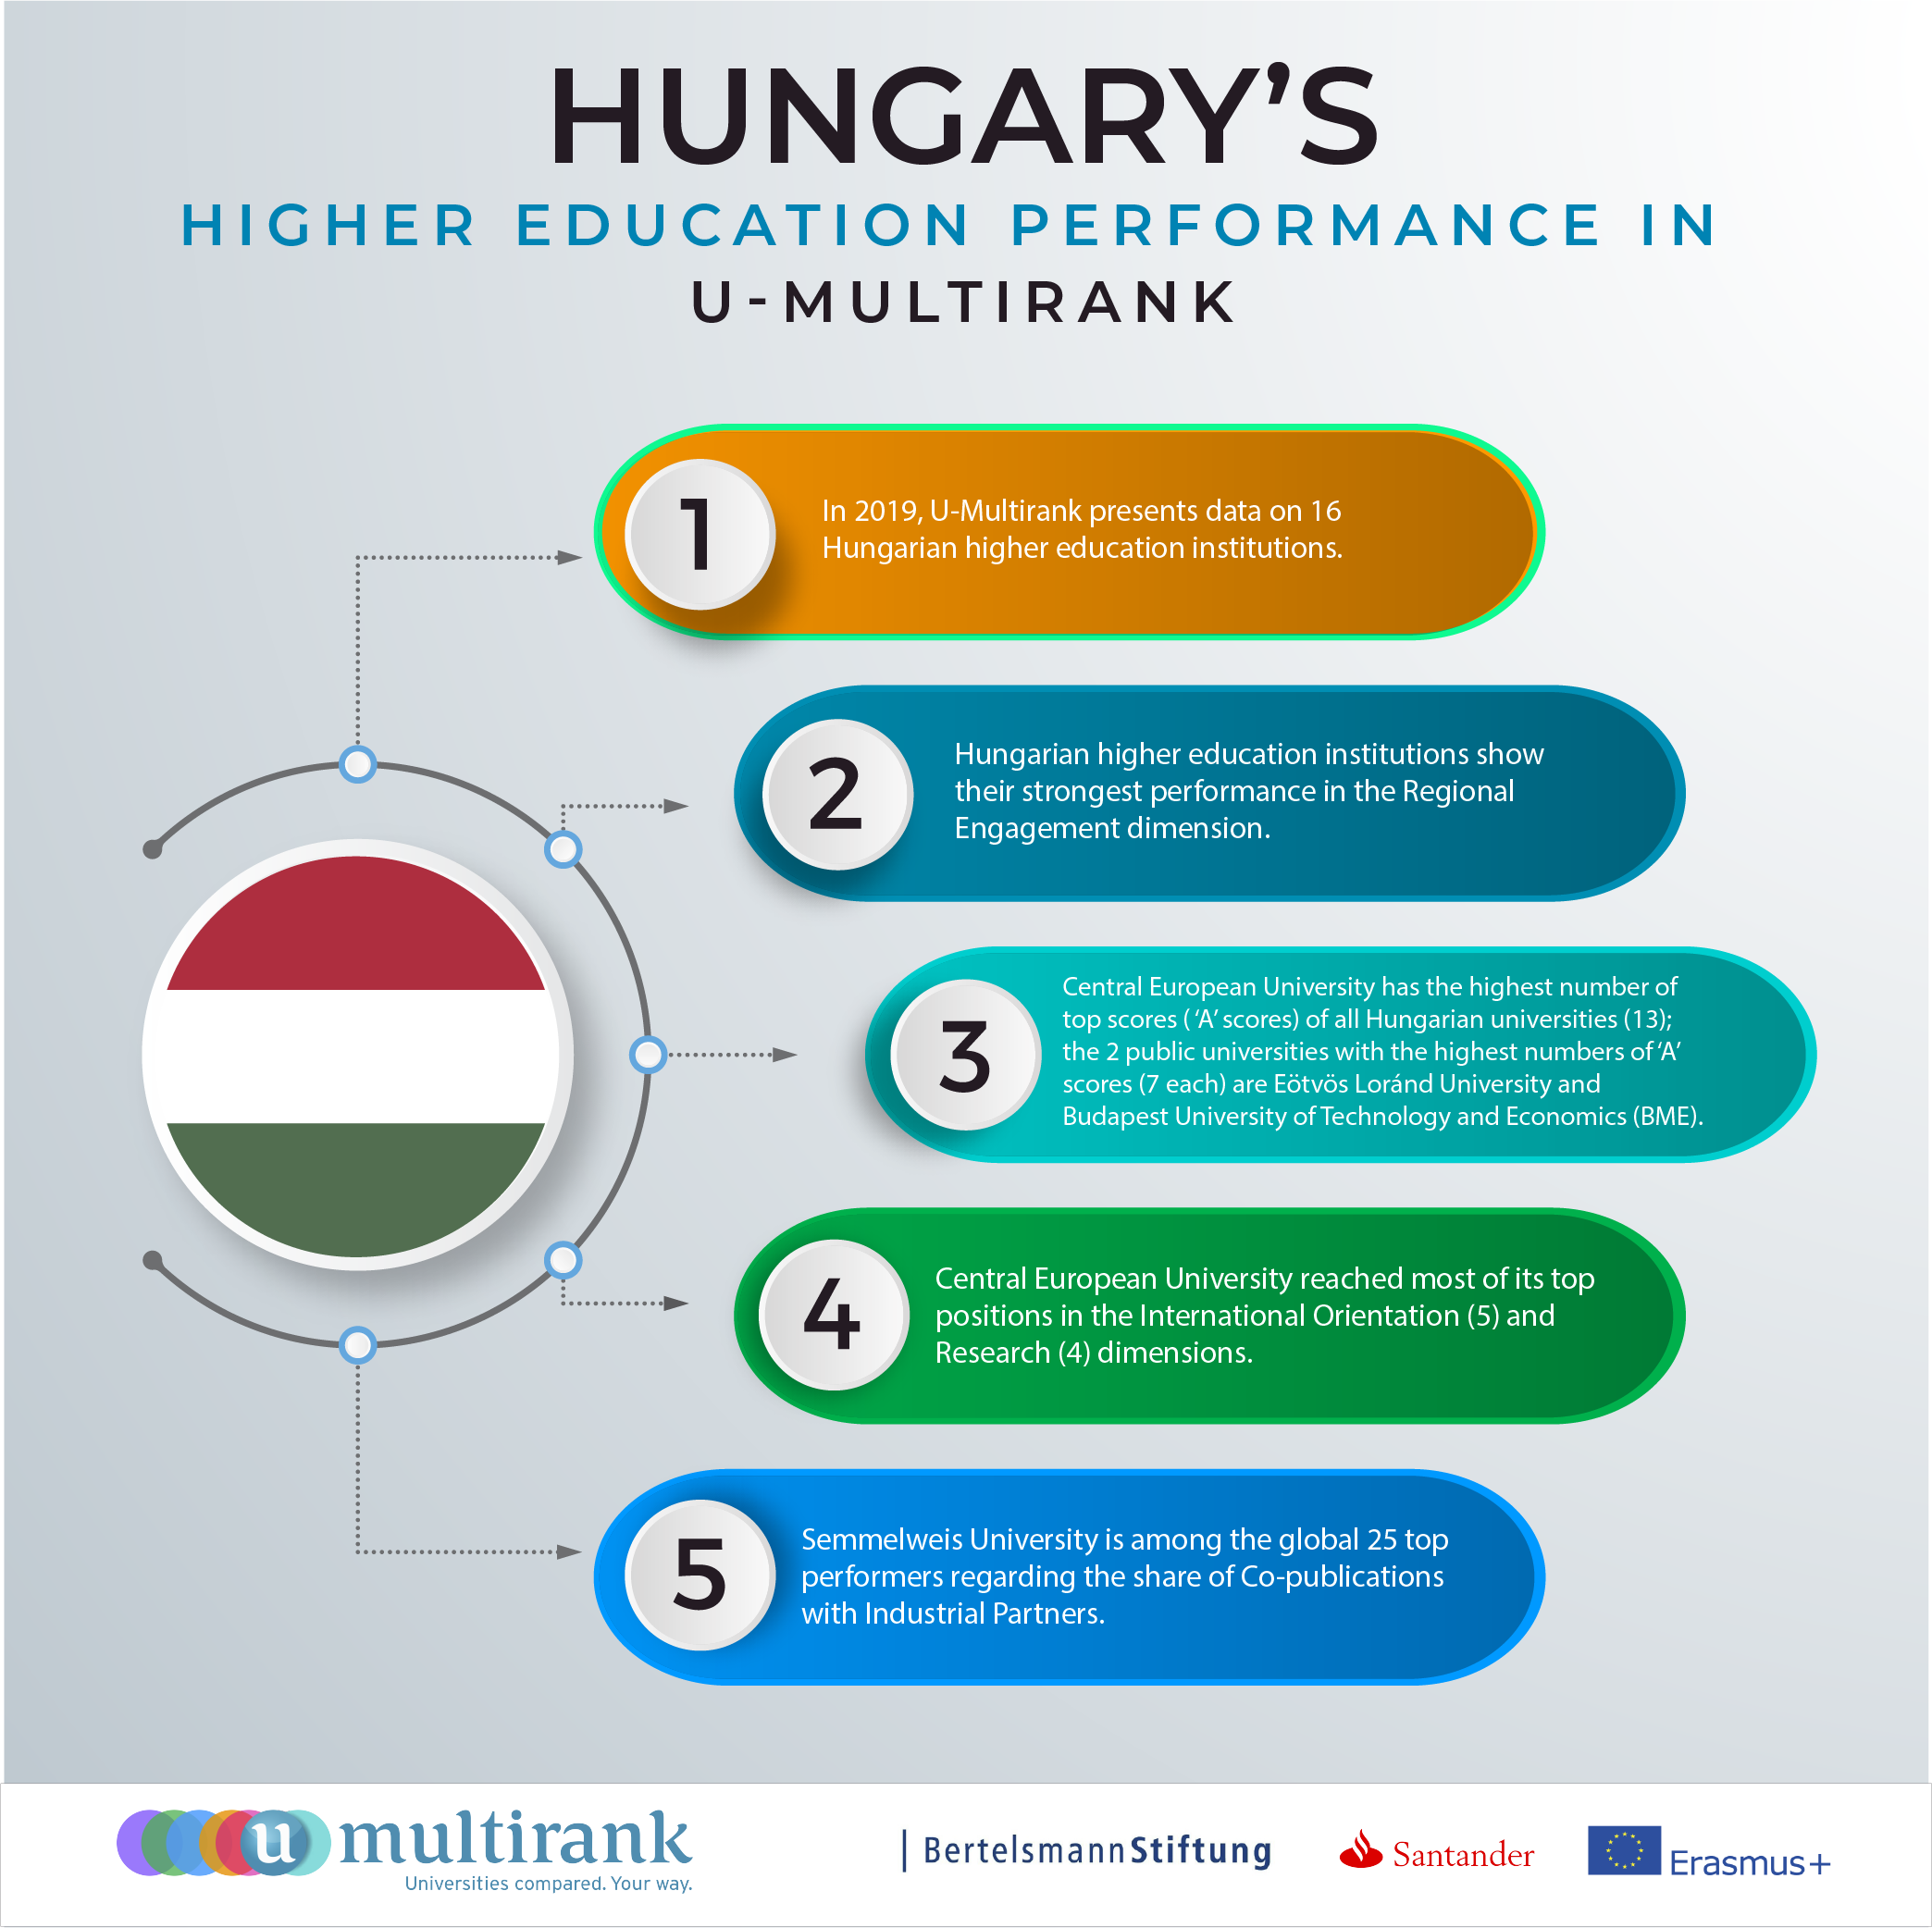 Hungary's Higher Education Performance in U-Multirank